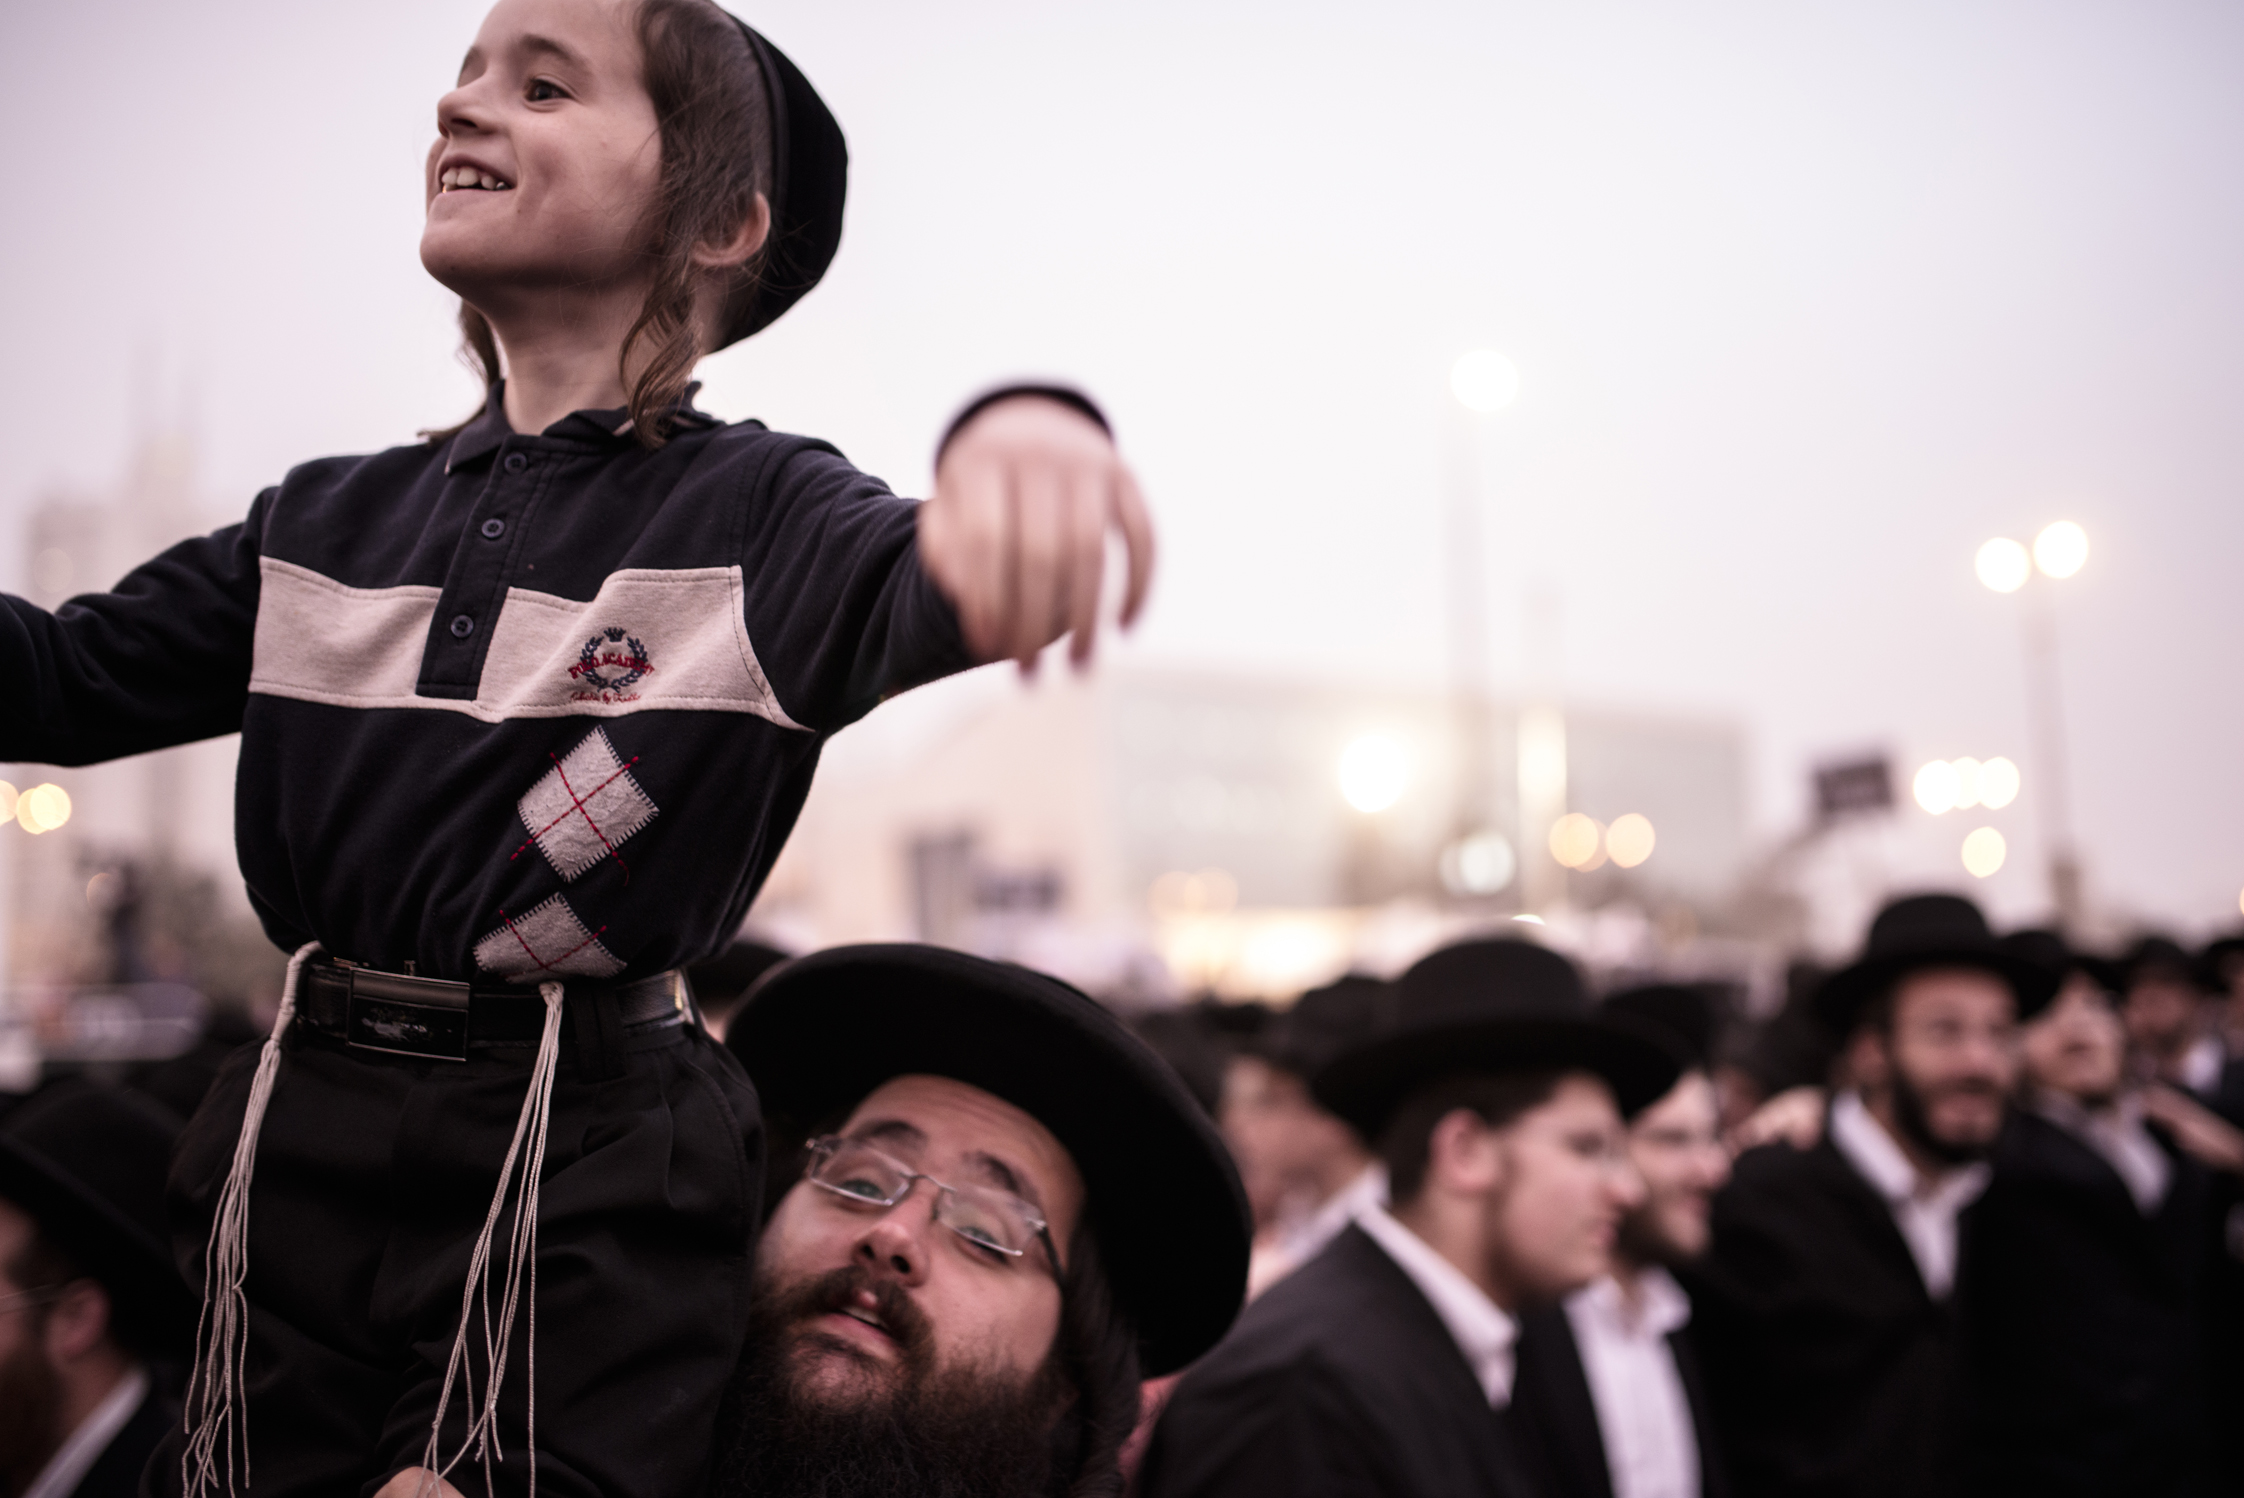 A father lifts his son as hundreds of thousands of Ultra Orthodox Jews demonstrate in Jerusalem against any plans to make them undergo military service. The protests were sparked by cuts in government funding to Jewish theological seminaries, or yeshivas, and a planned crackdown on young ultra-Orthodox men seeking to avoid Israel's compulsory military draft. The picture was taken in Jerusalem, Israel, 2nd Mar 2014.